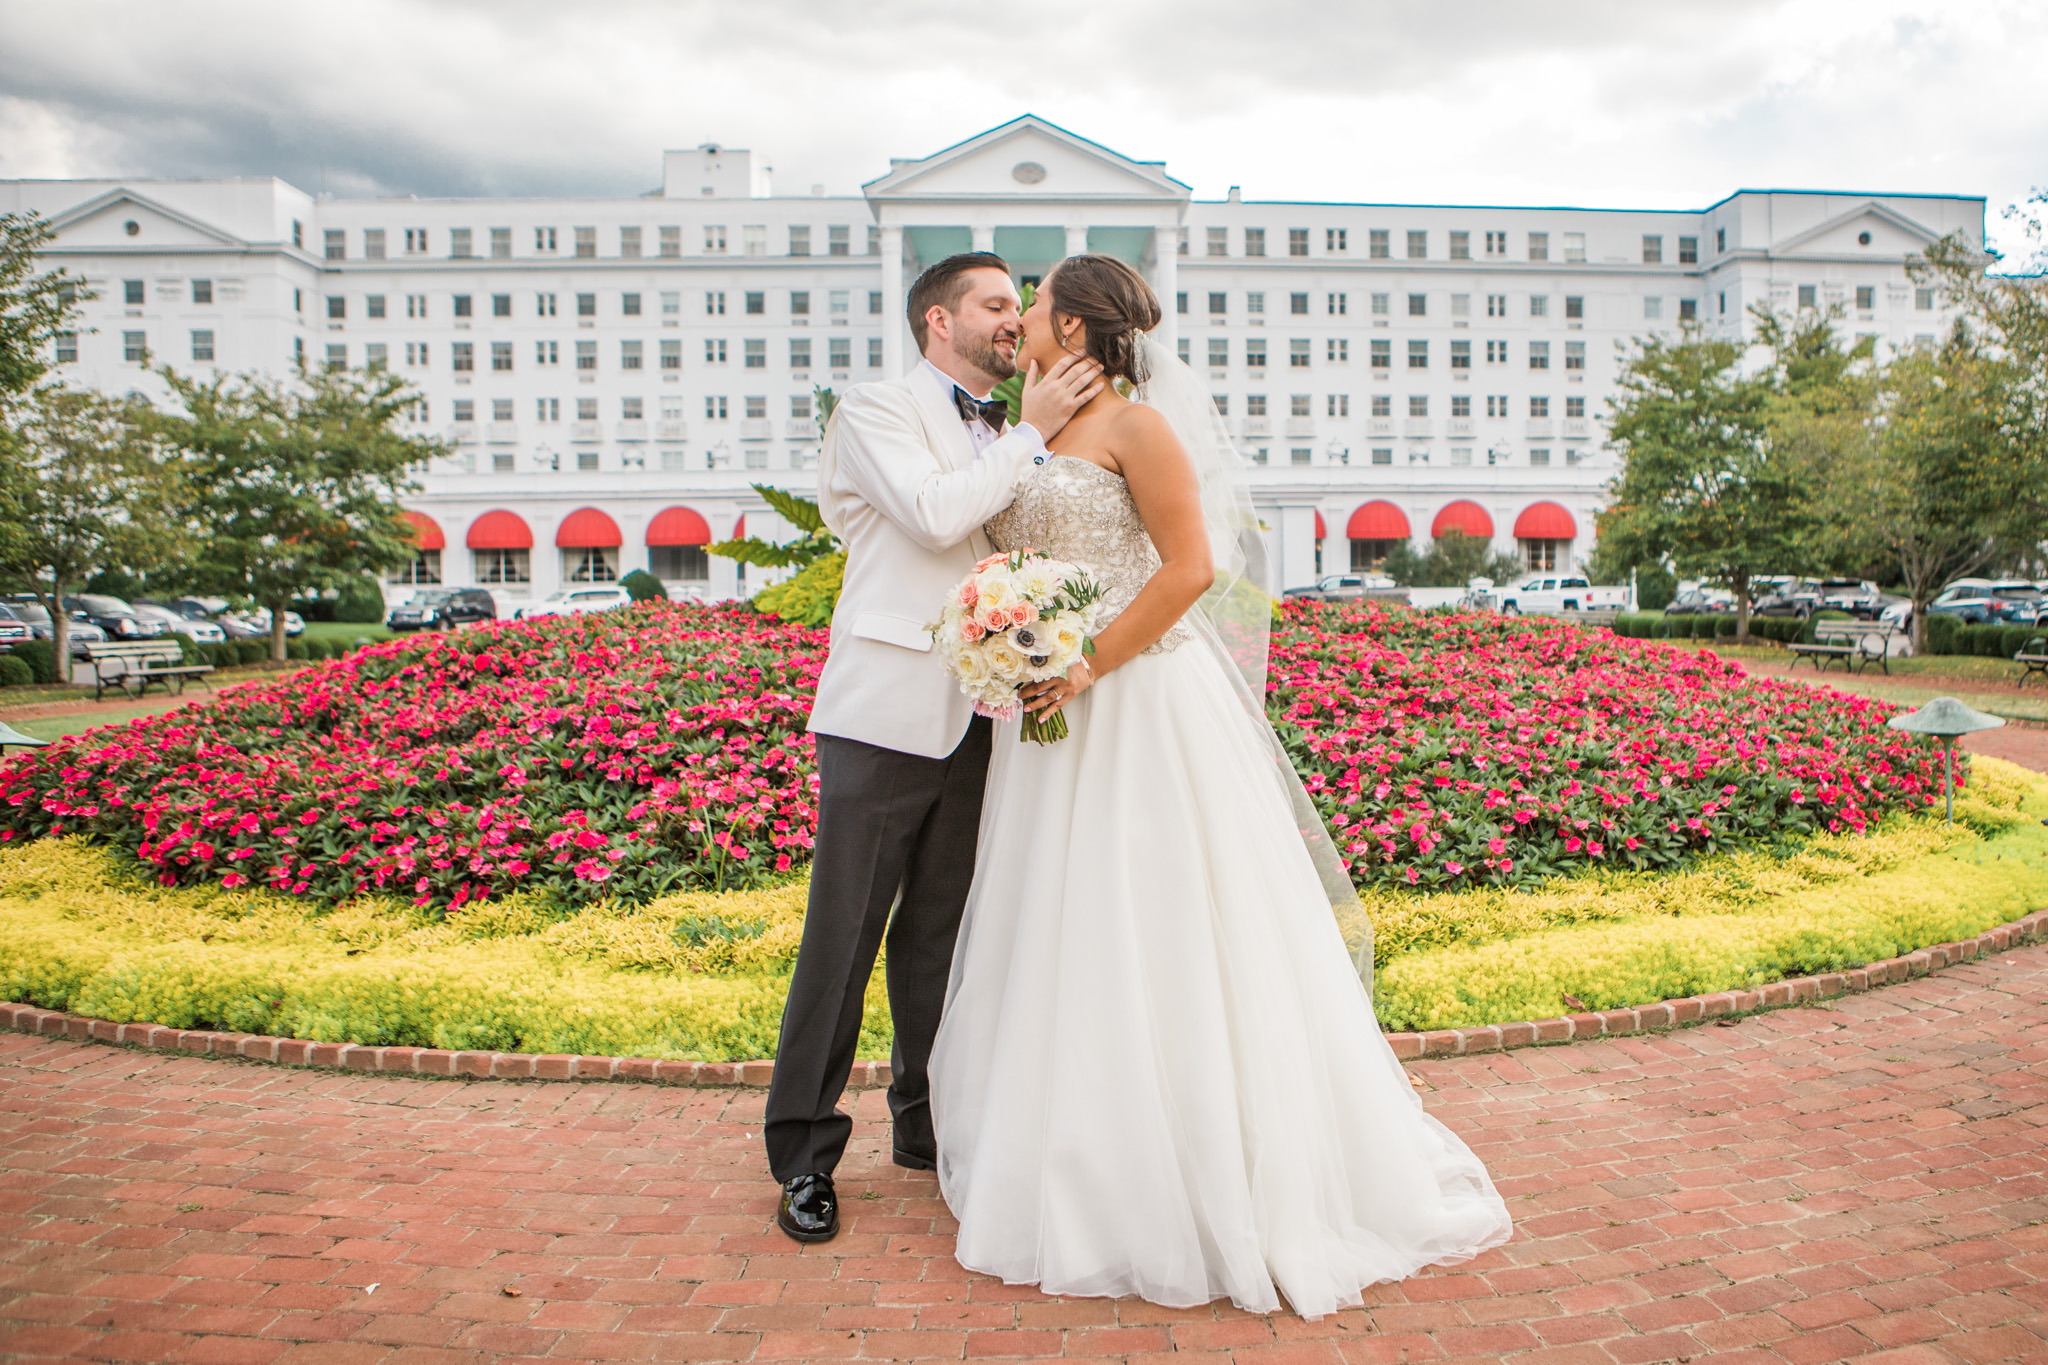 The main entrance of The Greenbrier is one of those places that are just unmistakable. The landscaping is always pristine. It makes for a lovely backdrop.